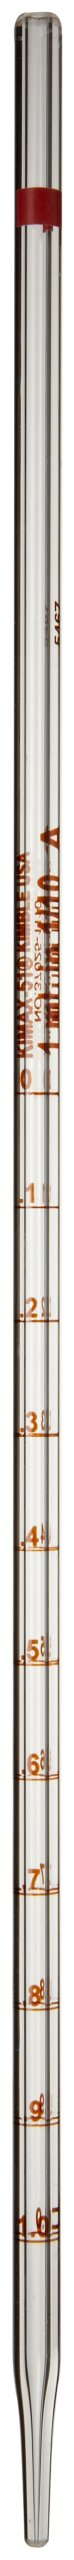 Kimble 37025-1110 Glass Serialized and Certified Mohr Style Pipet With 0.10 Divisions 1mL Volume (Case of 12)